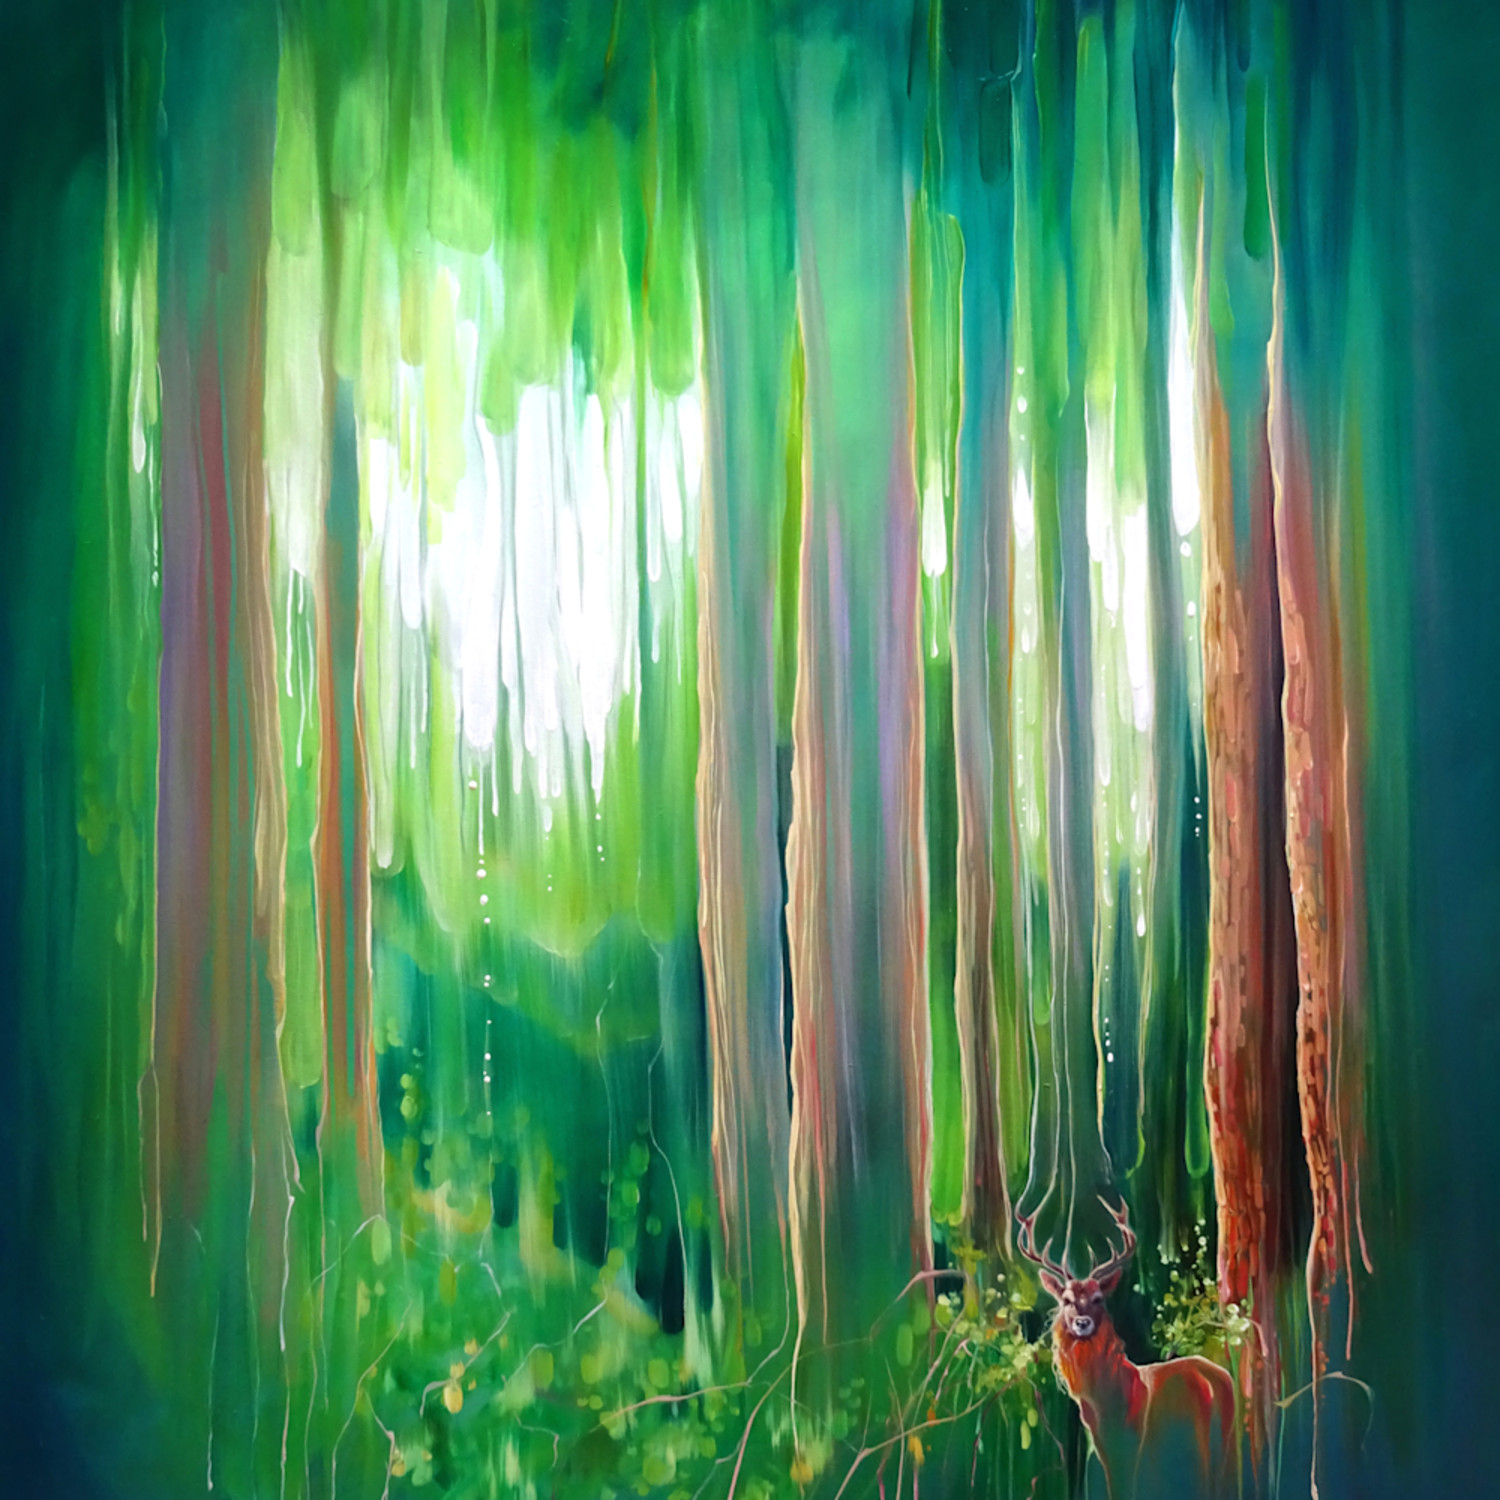 Deep in the green wood 72 lbzwhr